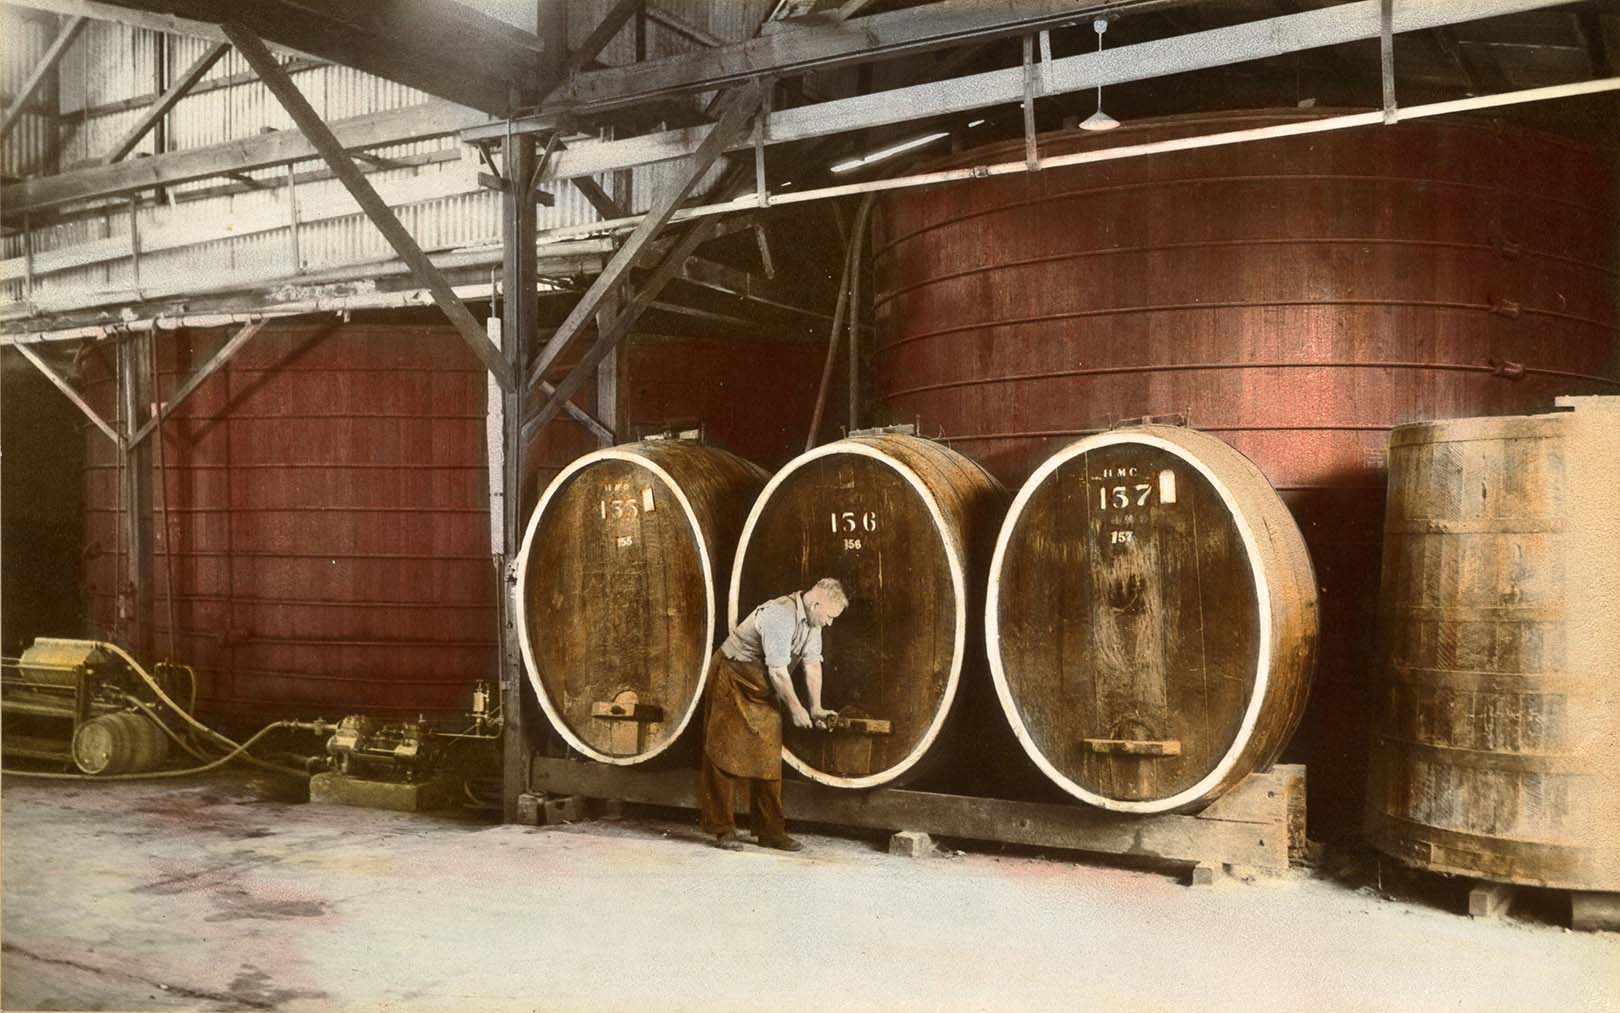 Storage Vats at Hamiltons Ewell Winery 1960s